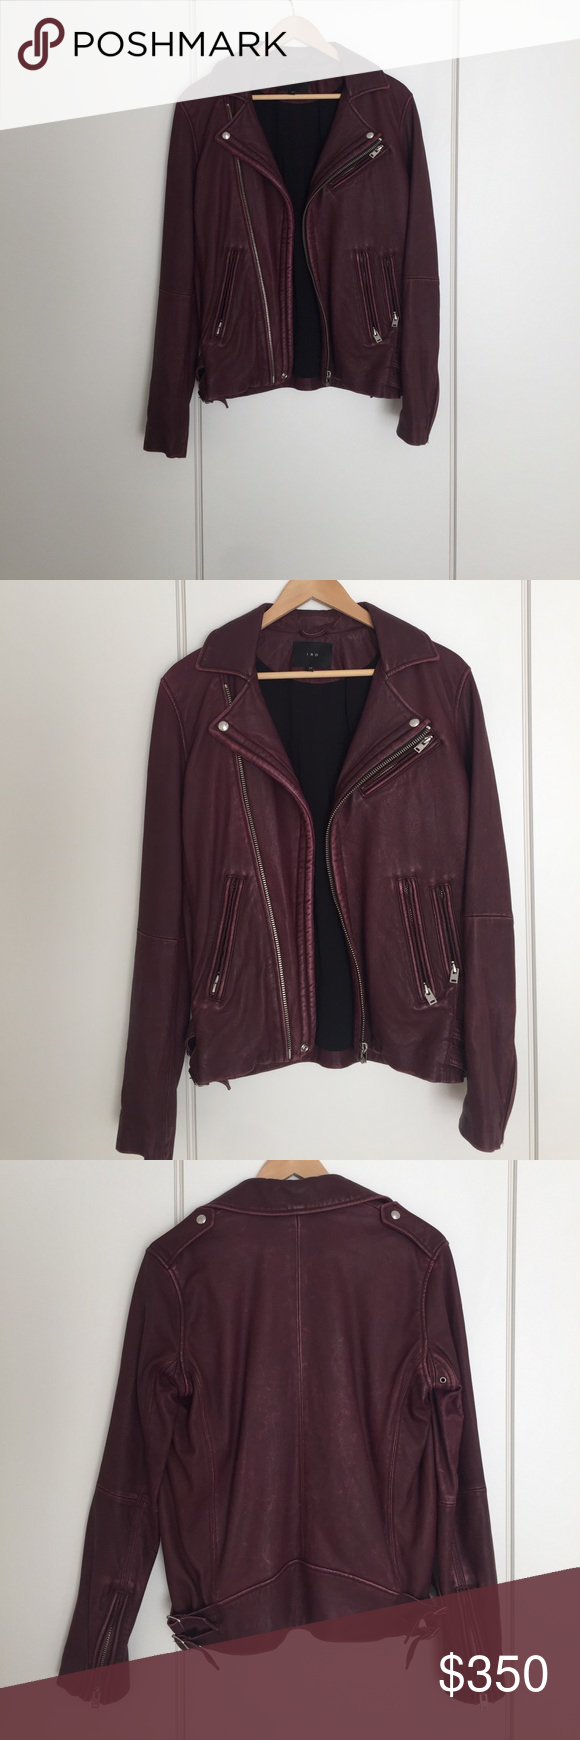 IRO A/W 15 Leather Jacket 100% lamb leather biker jacket. It doesn't have the original tags on it but has only been worn 1-2 times. It's a rich burgundy / oxblood. Size XS IRO Jackets & Coats